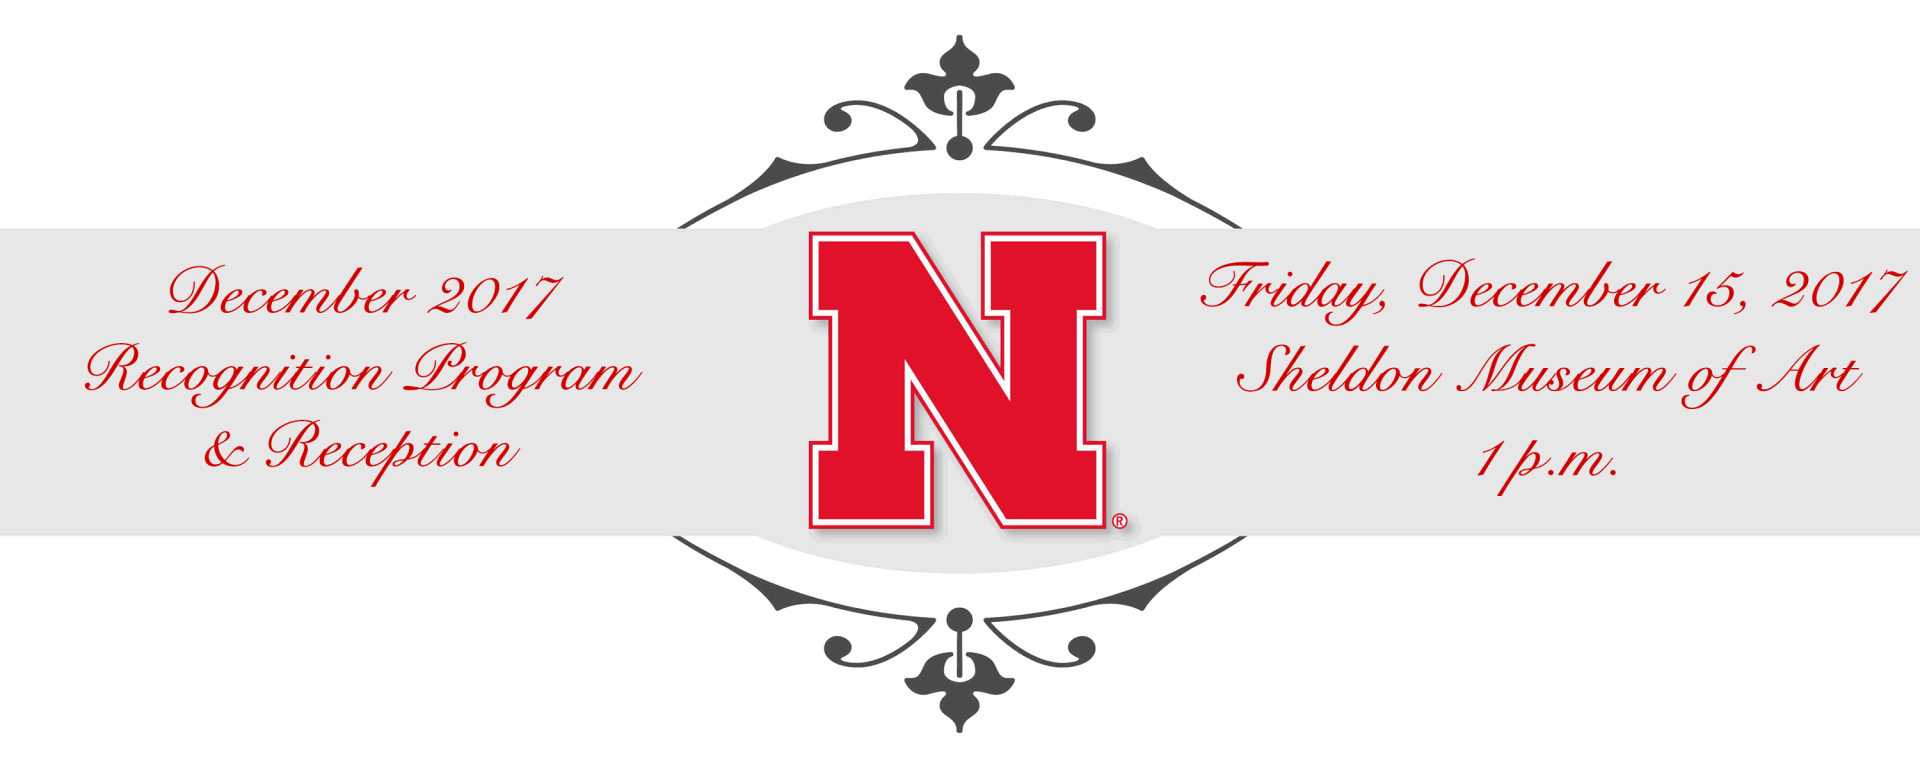 May 2017 University of Nebraska-Lincoln, College of Engineering December 15 Recognition Program and Reception. Friday, December 15, 2017. Sheldon Museum of Art. 1 p.m.